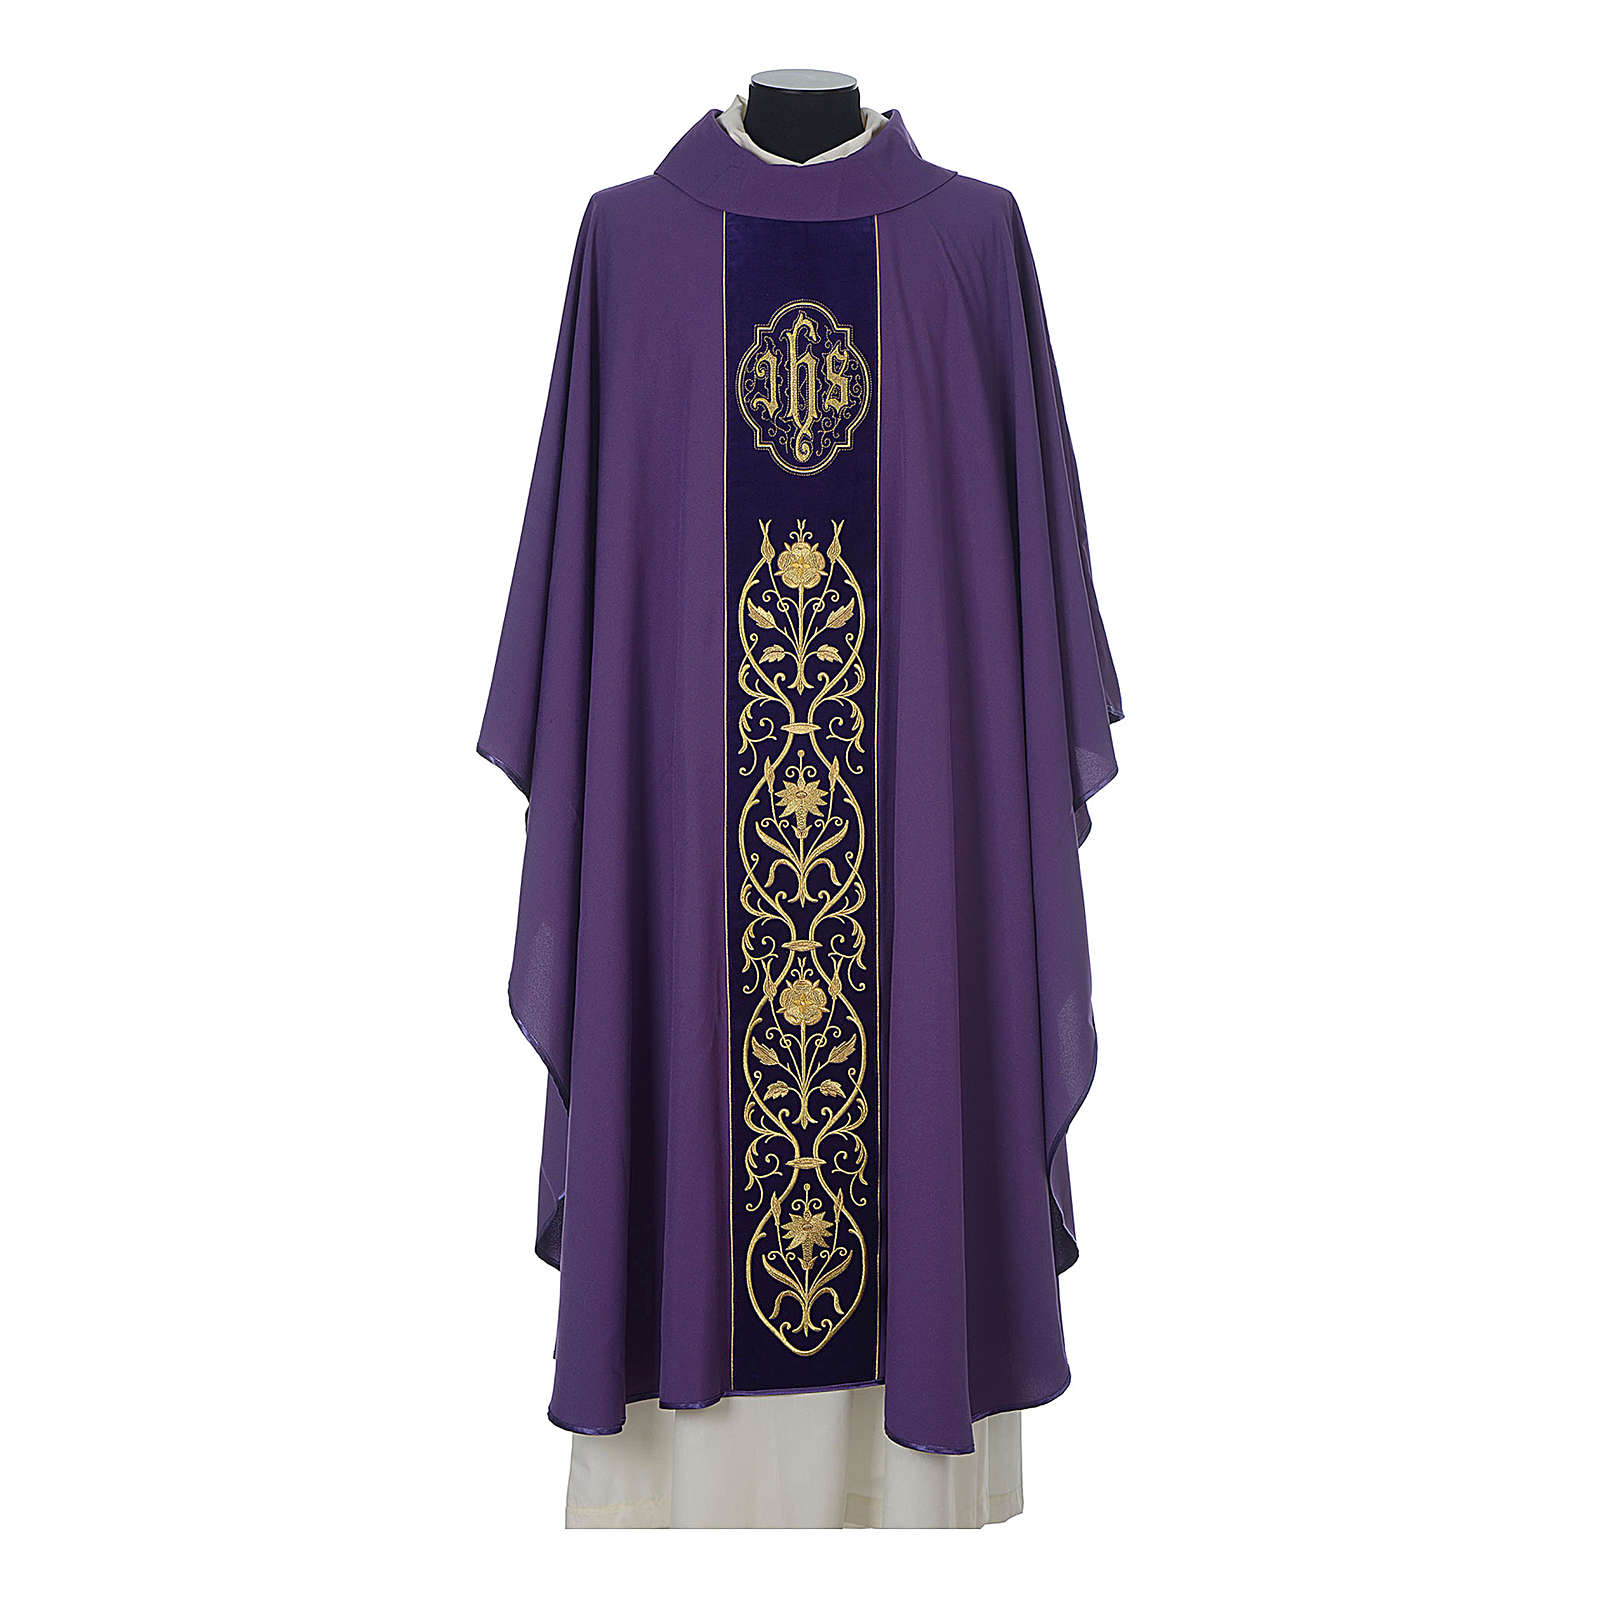 Wool chasuble with IHS floral decorations on velvet galloon 4